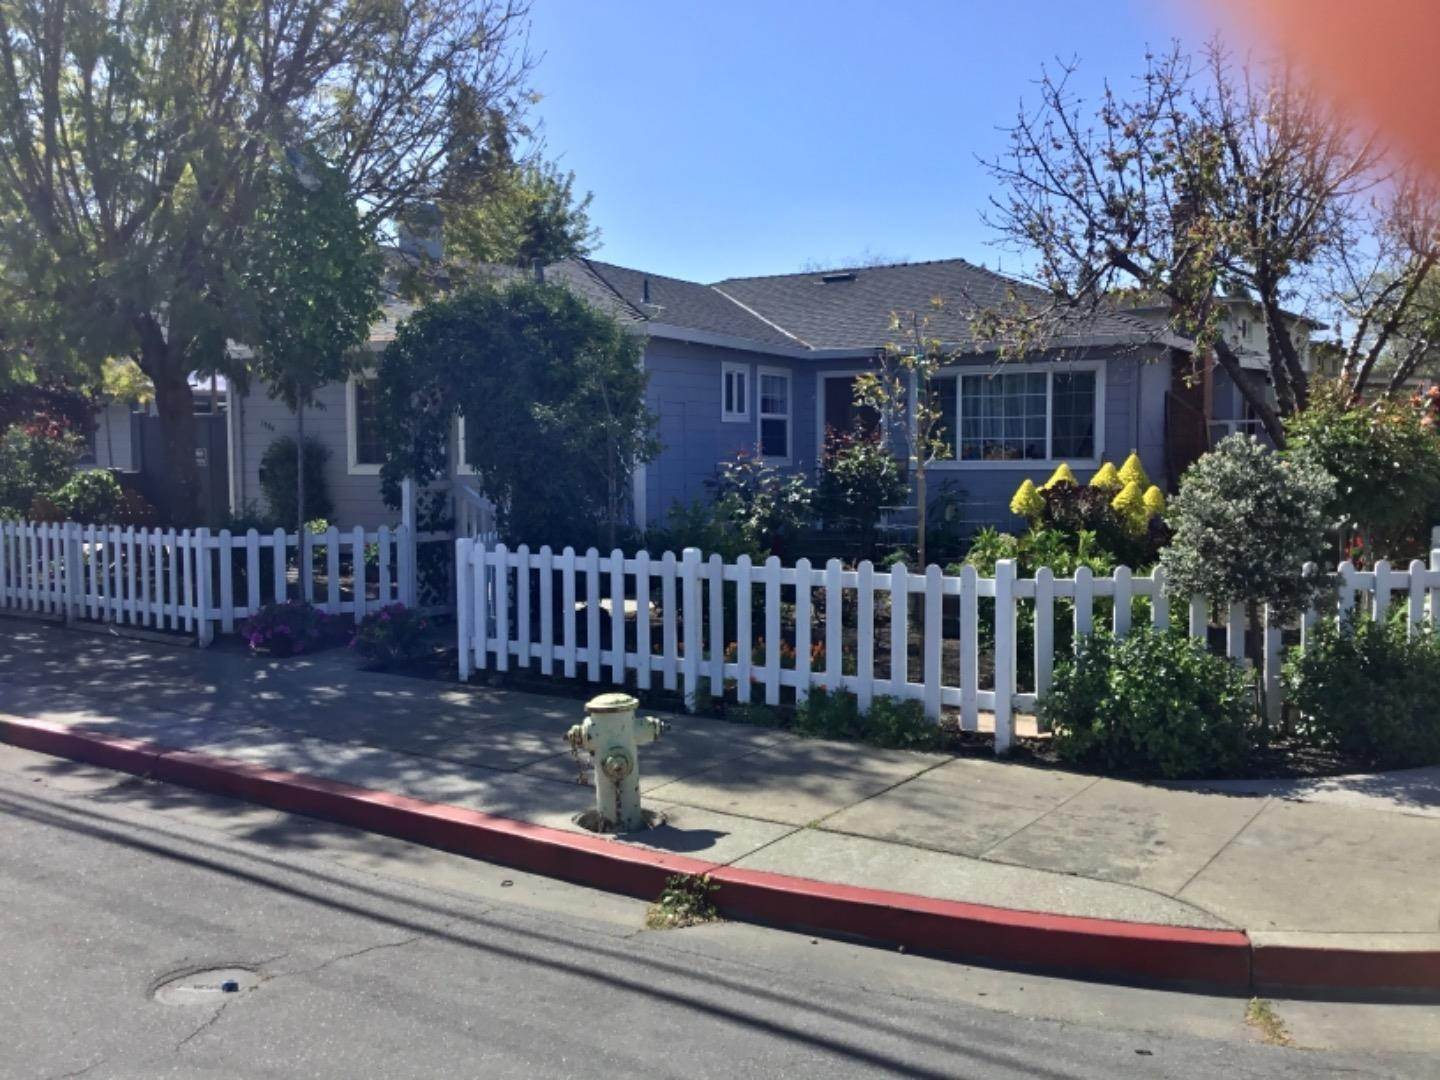 Multi-Family Homes for Sale at 1502 Hess Road Redwood City, California 94061 United States